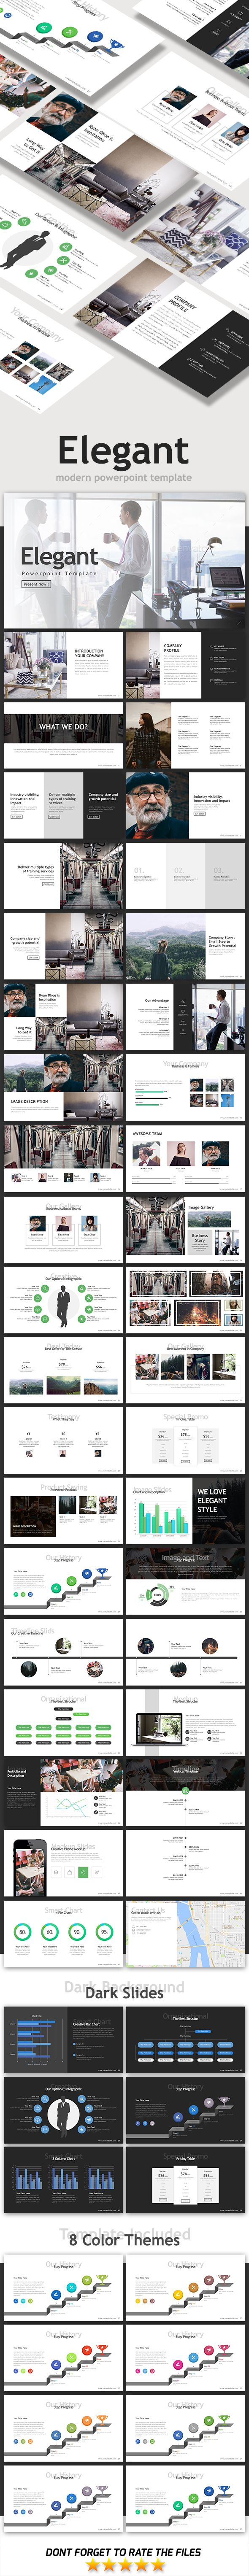 Elegant Powerpoint Template | Template, Business powerpoint ...